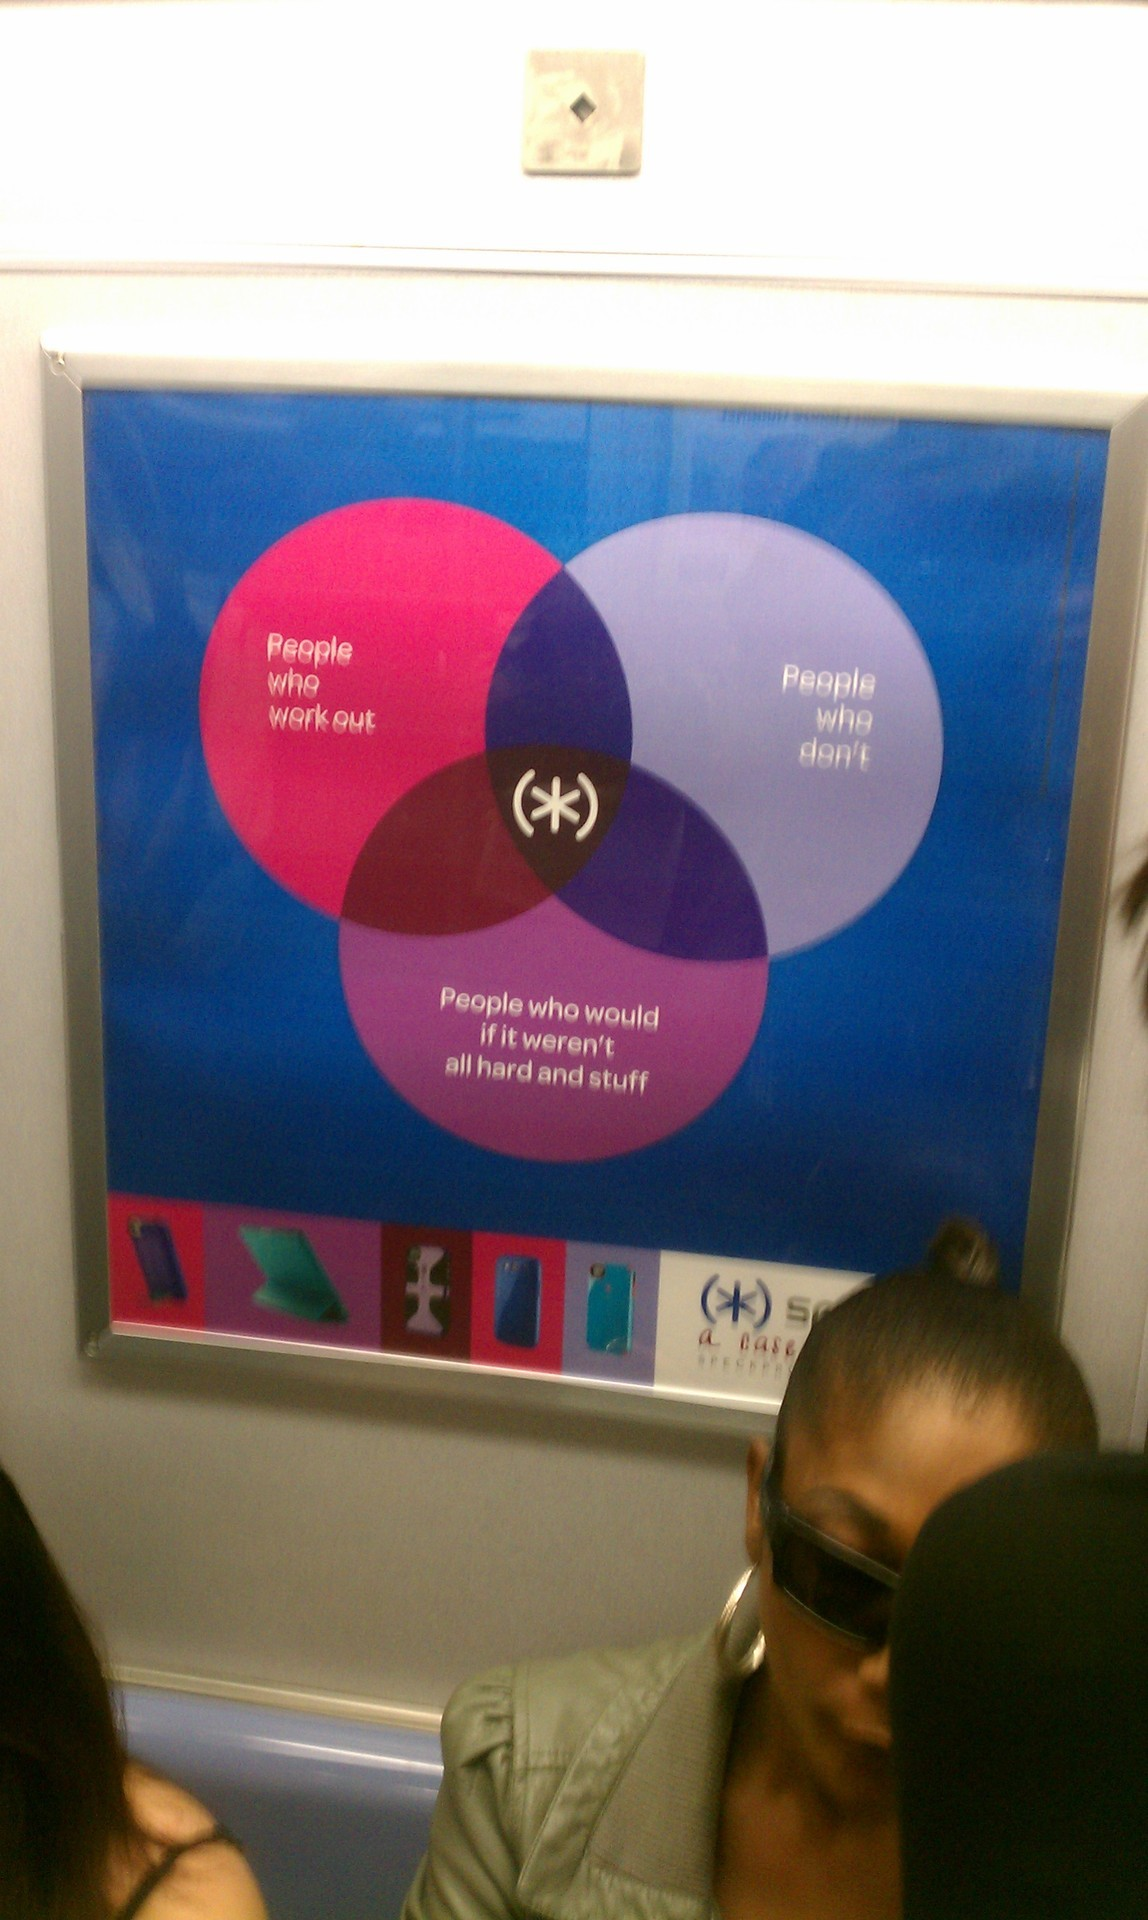 The foolishness in this chart is palpable. Seen on the R train in New York City -legallyblindobservations More of this nonsense.